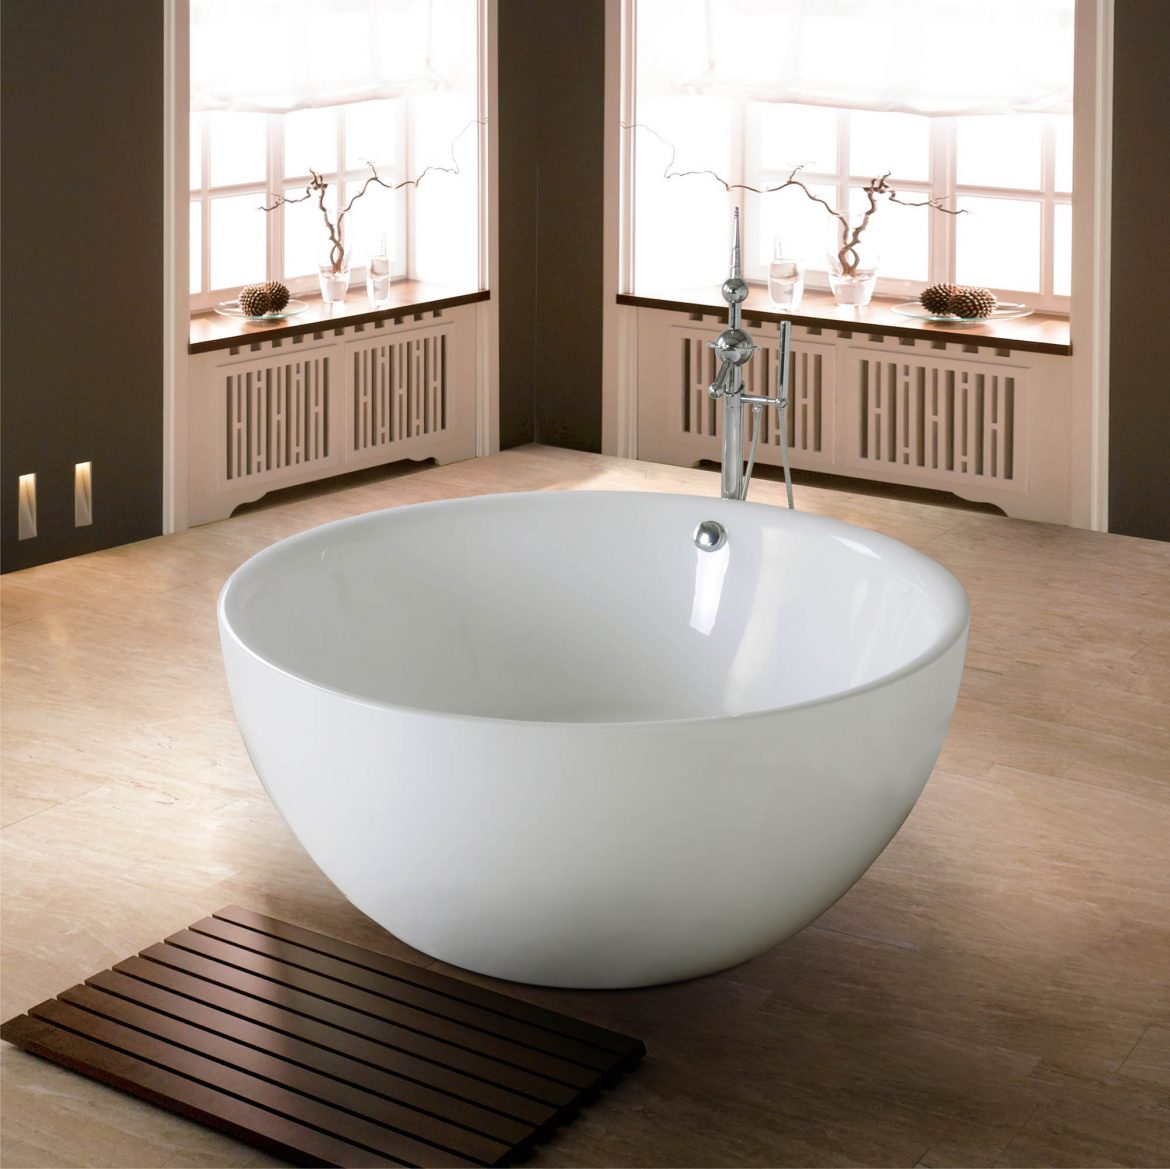 Bathroom Trends for 2016 by Maison Valentina